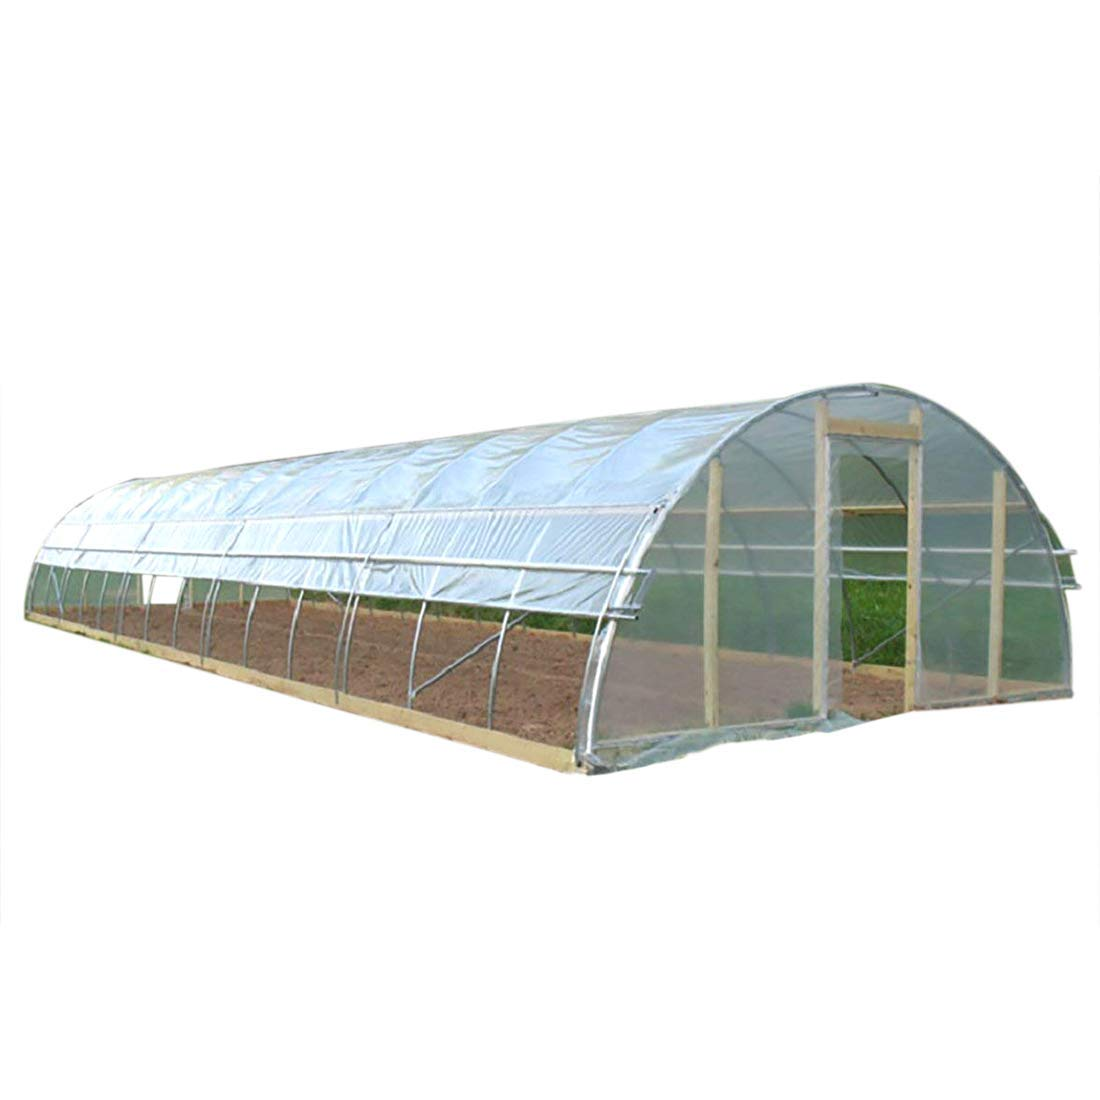 Agfabric 5.5Mil Plastic Covering Clear Polyethylene Greenhouse Film UV Resistant for Grow Tunnel and Garden Hoop, Plant Cover&Frost Blanket for Season Extension, 12x10ft by Agfabric (Image #1)